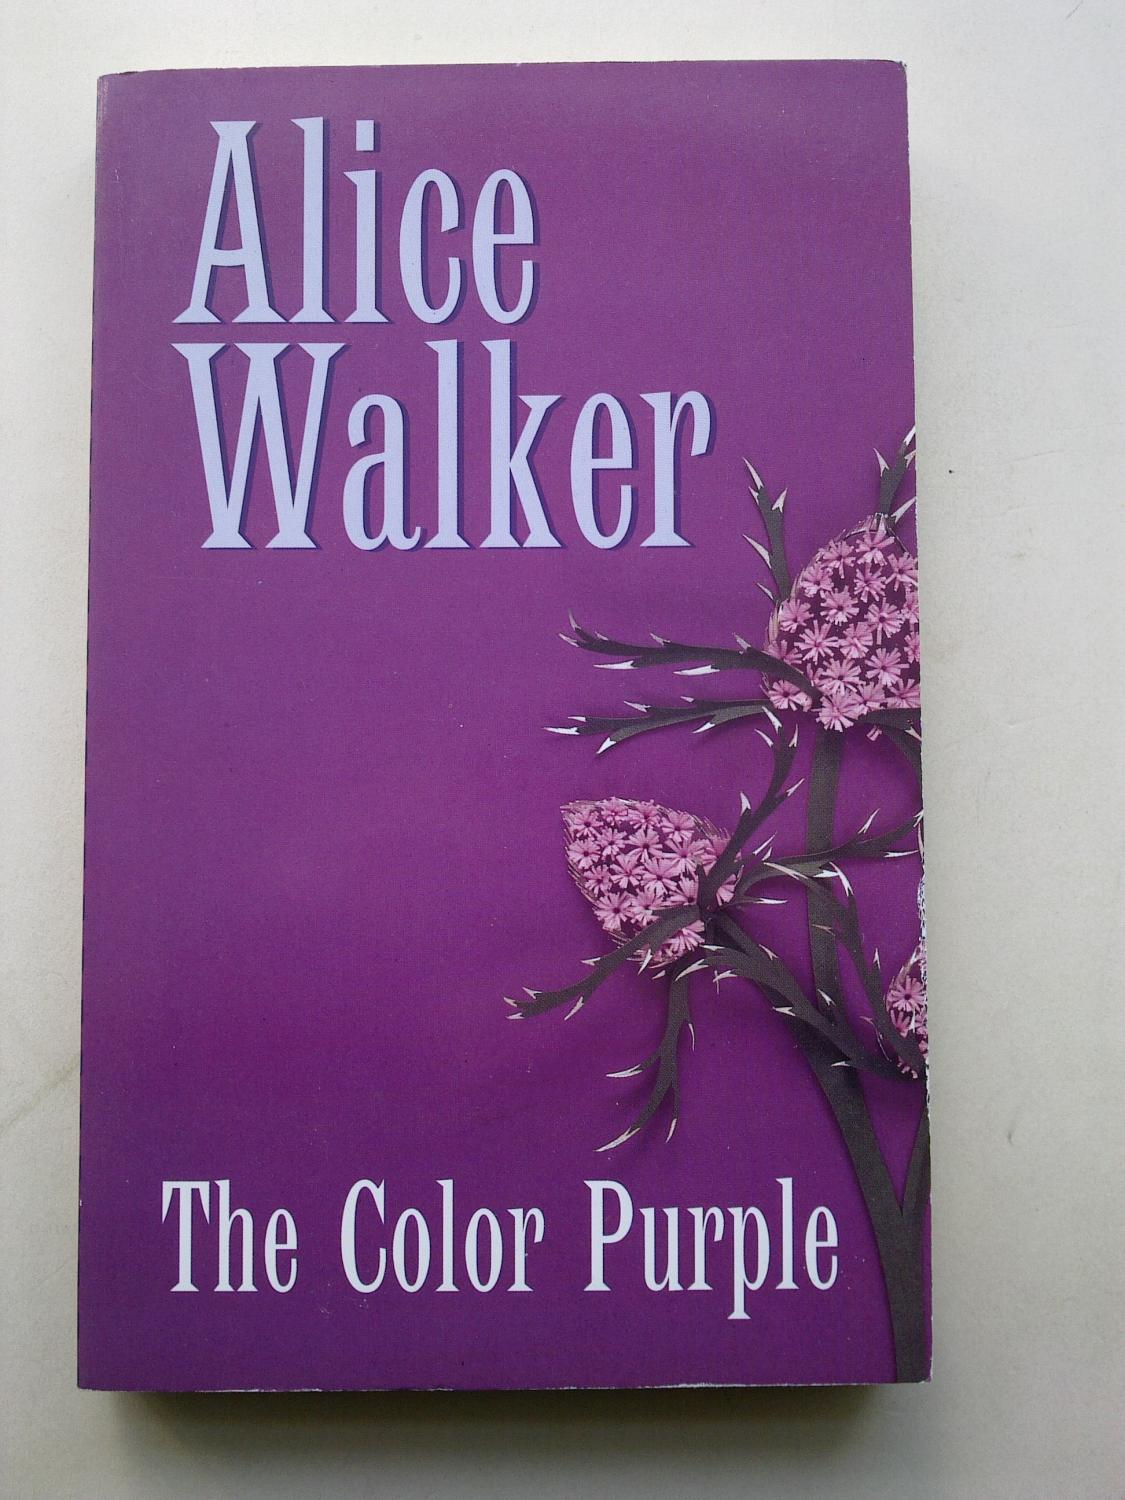 the color purple essays color purple essay topics mexican essays ...